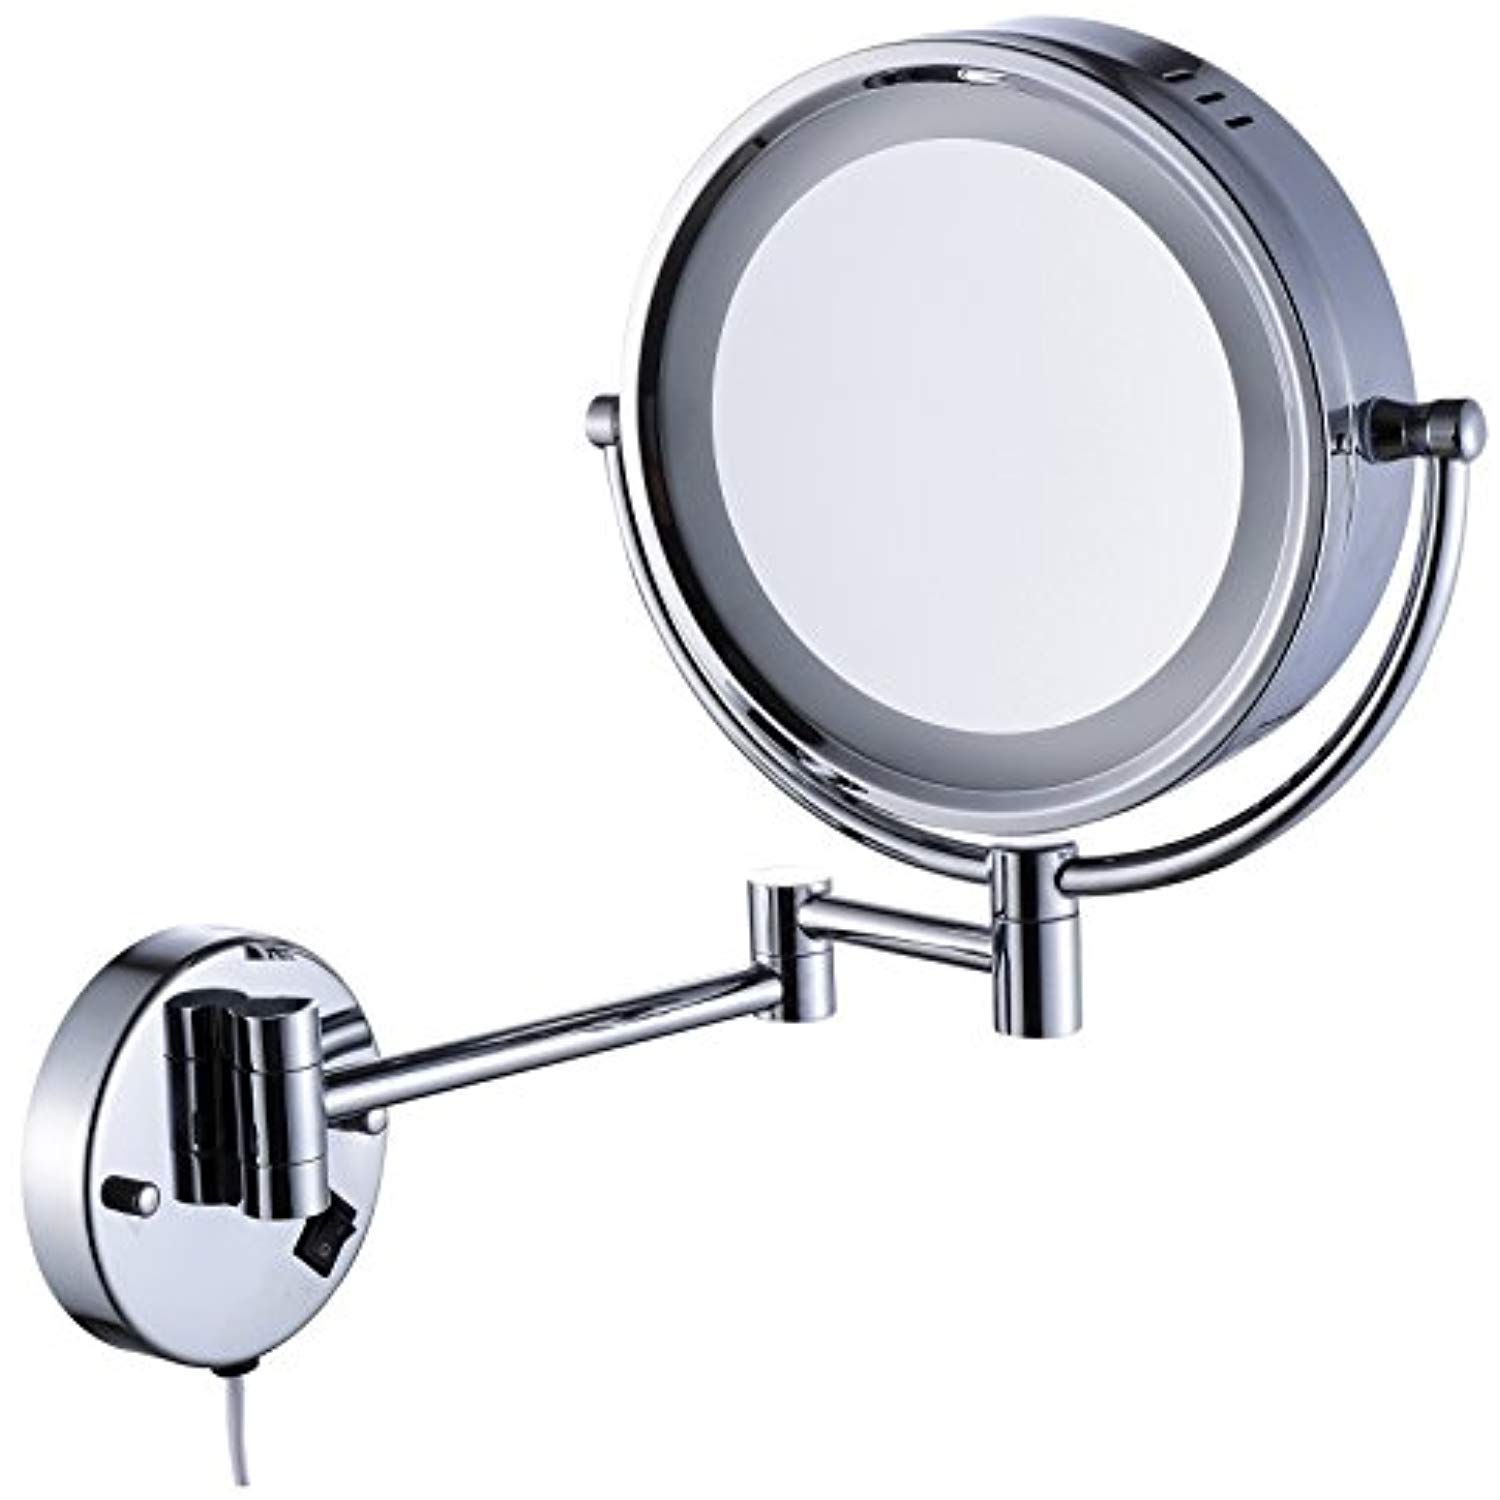 Cavoli Makeup Mirror With Led Lighted Wall Mounted 10x Magnification Chrome Finish 8 5 Inch 10x Too Mirror With Led Lights Wall Mounted Makeup Mirror Mirror